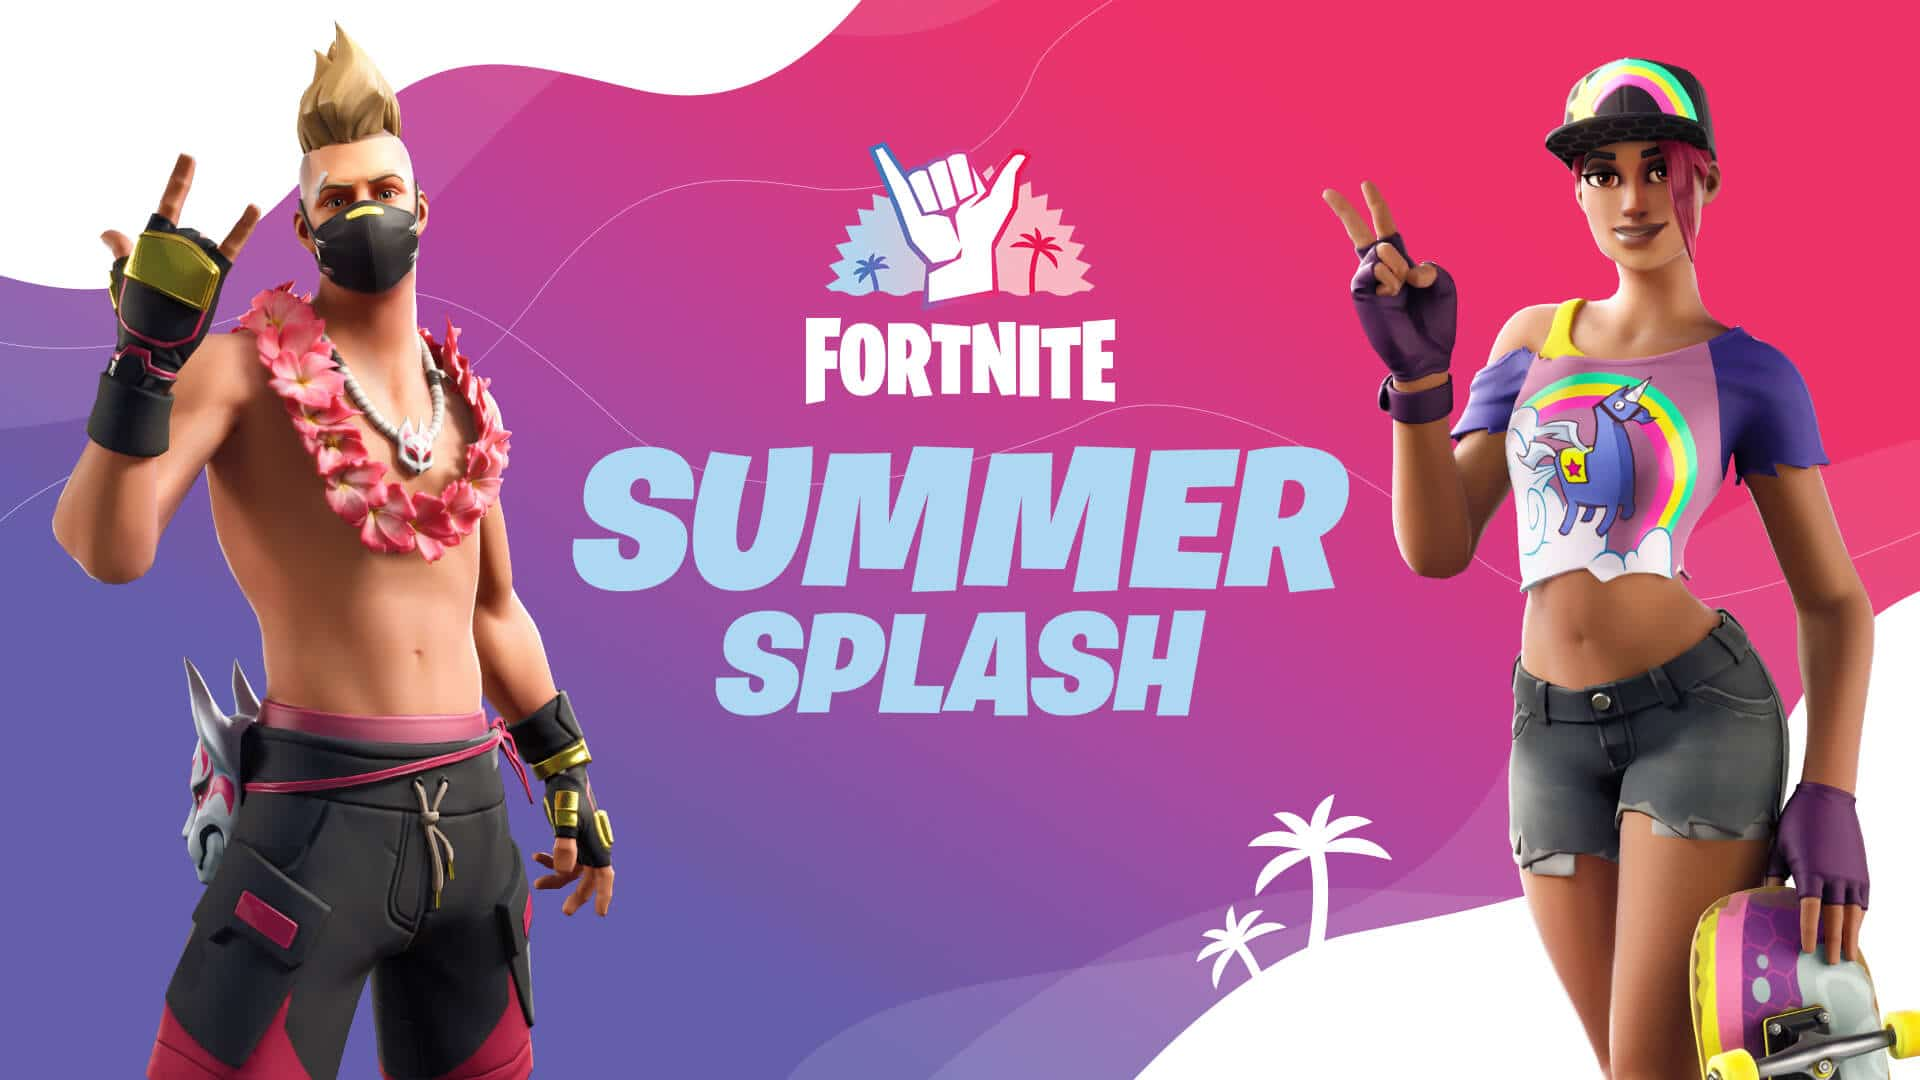 Fortnite Summer Splash Event